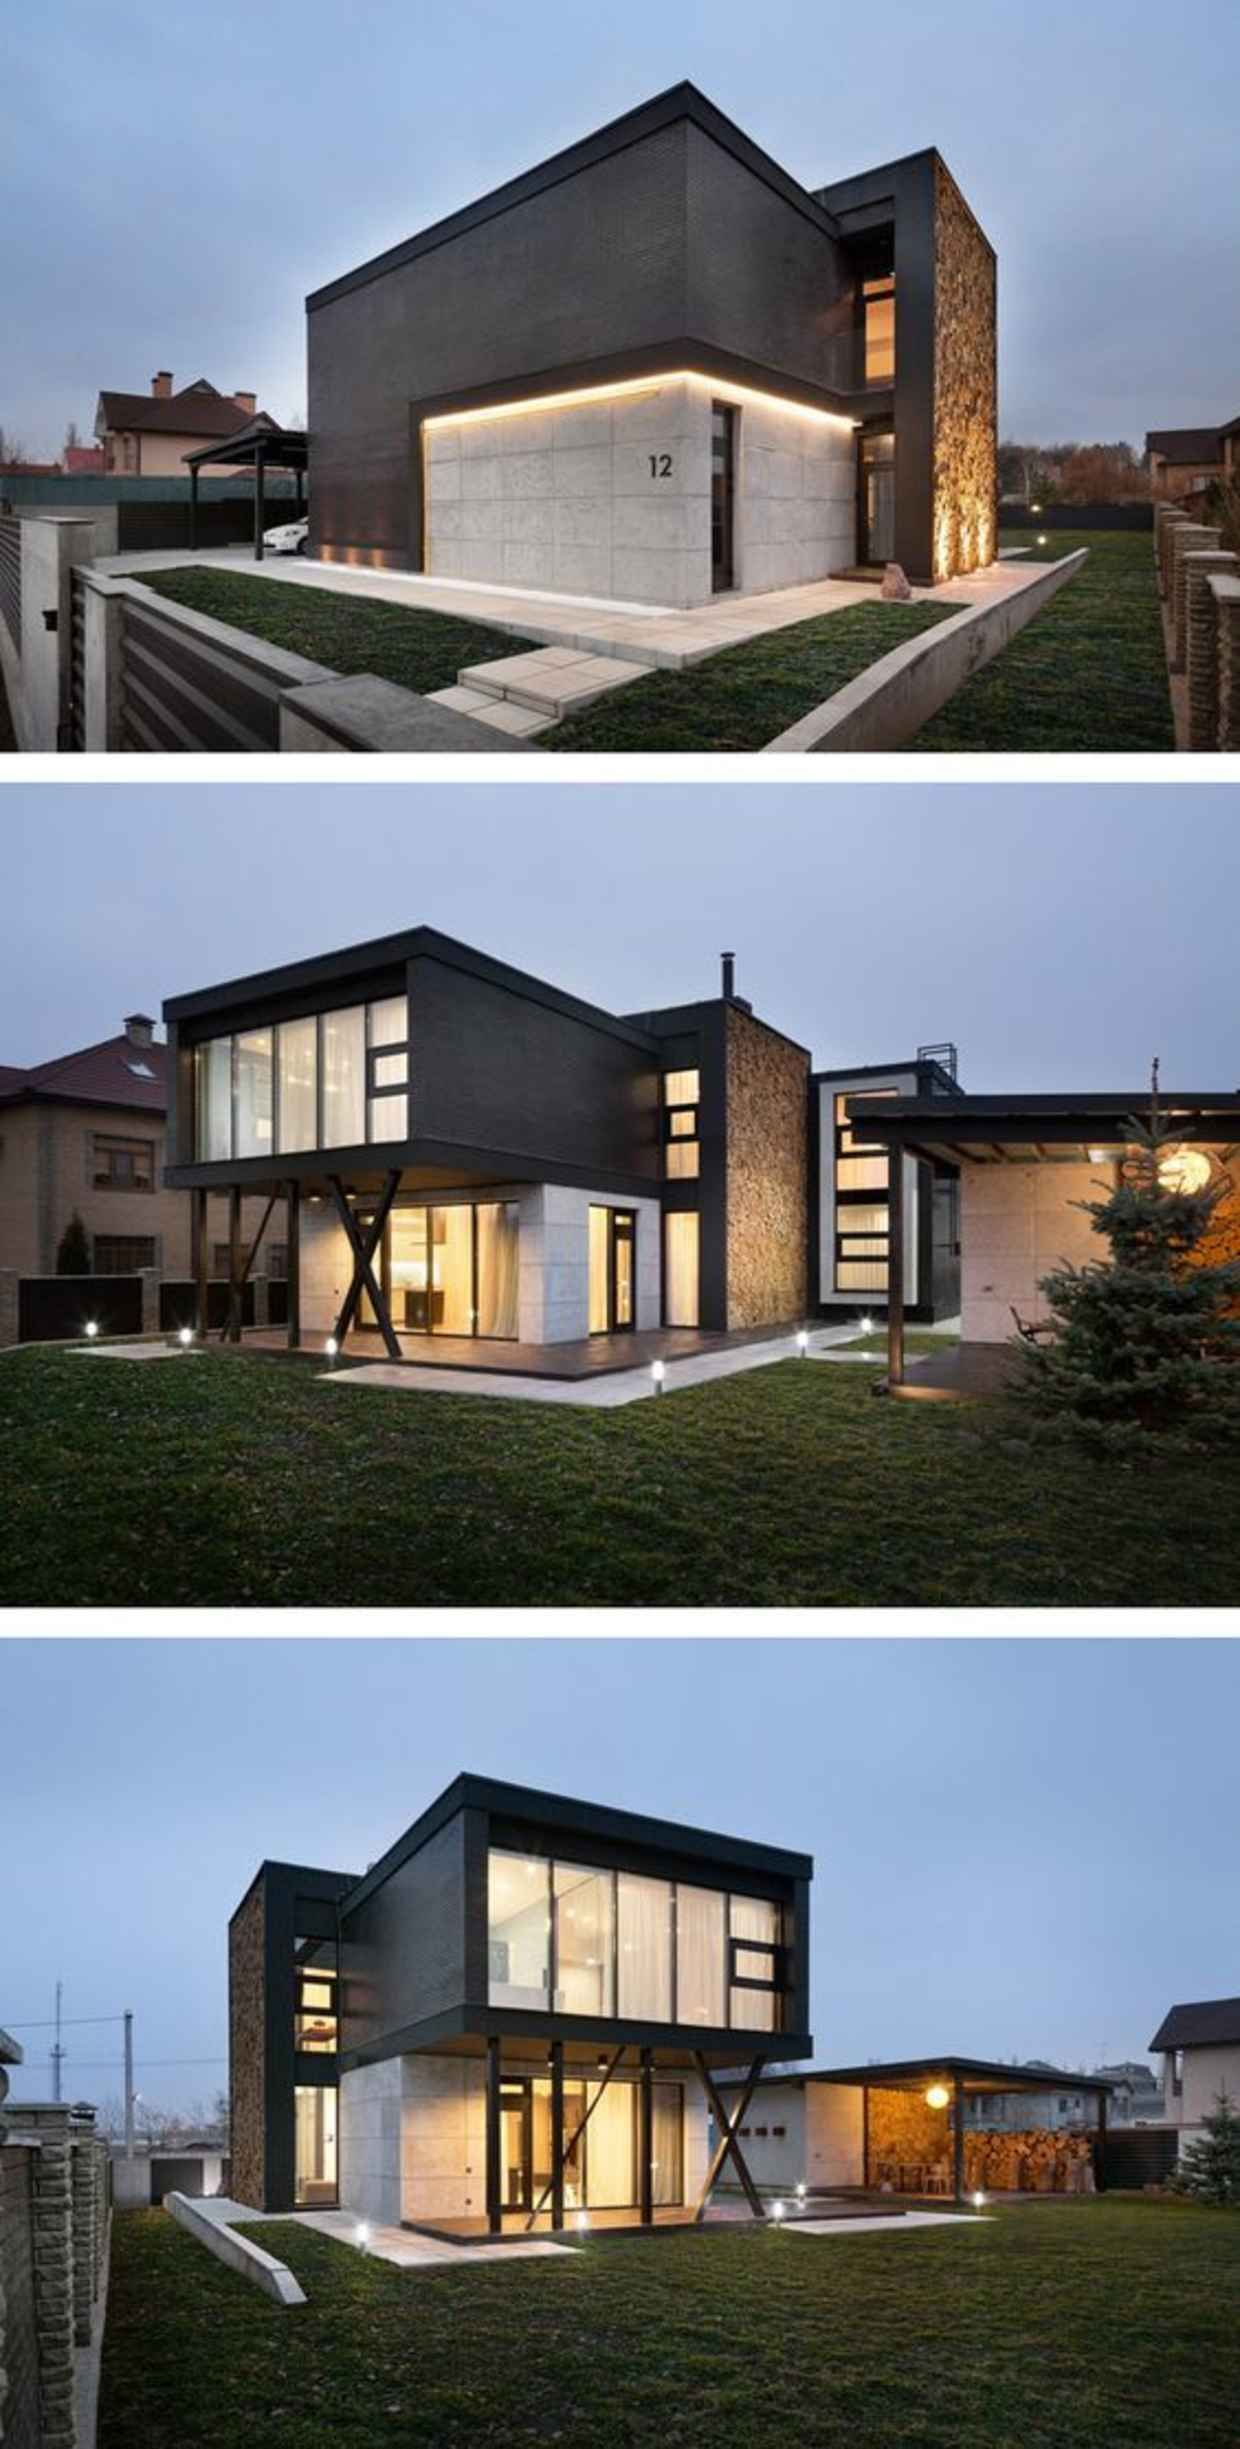 40 Examples Of Stunning Houses & Architecture #3 | Pinterest ...